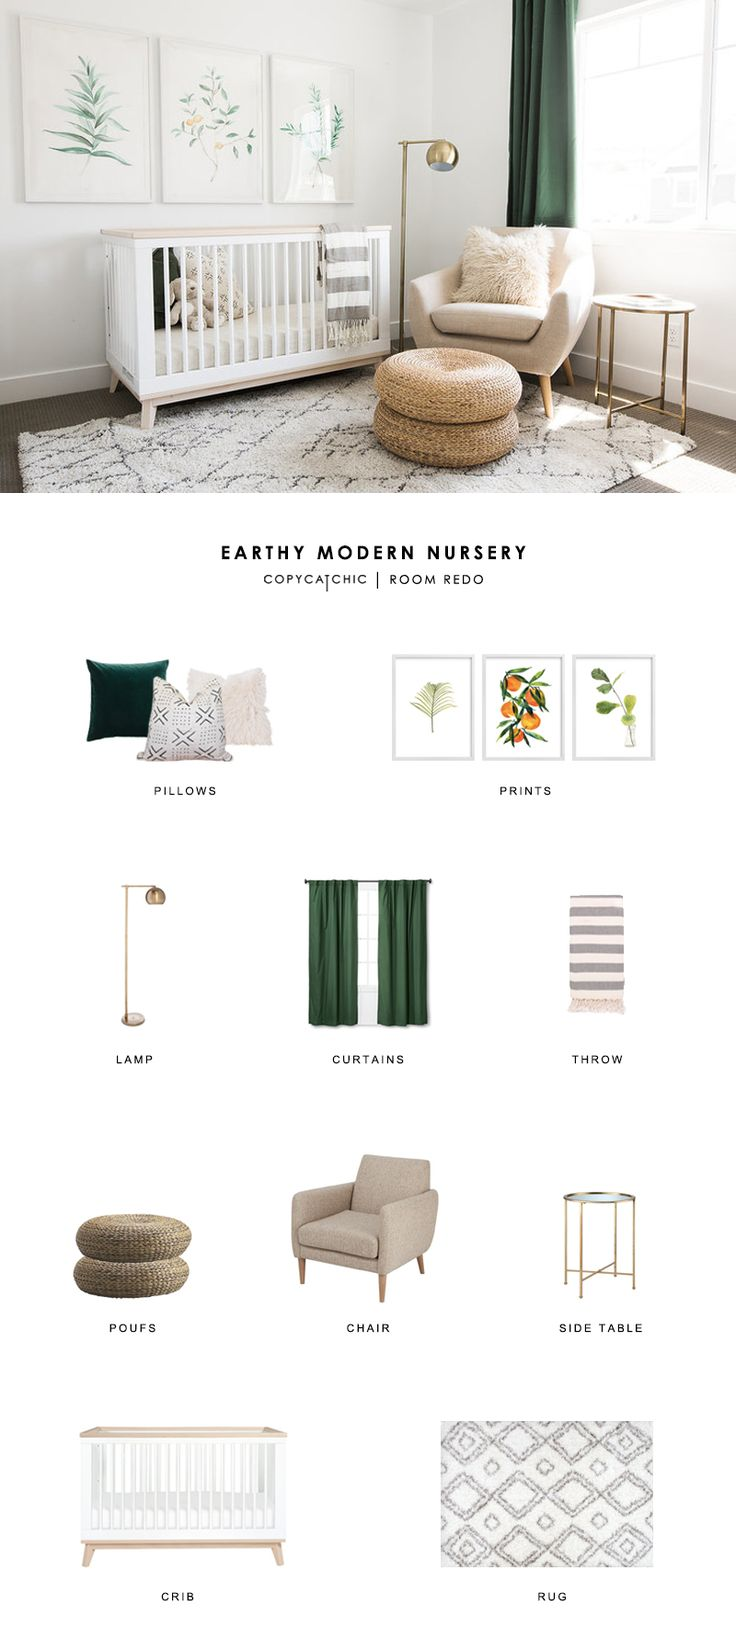 TOTAL | $1,594  GREEN PILLOW $10 | MUDCLOTH PILLOW $45 | FUR PILLOW $28 | PRINT 1 $178 | PRINT 2 $178 | PRINT 3 $178 | LAMP $57 | CURTAINS (EA) $15 | THROW $16 OR THIS ONE $76 | POUFS $30 OR THIS ONE